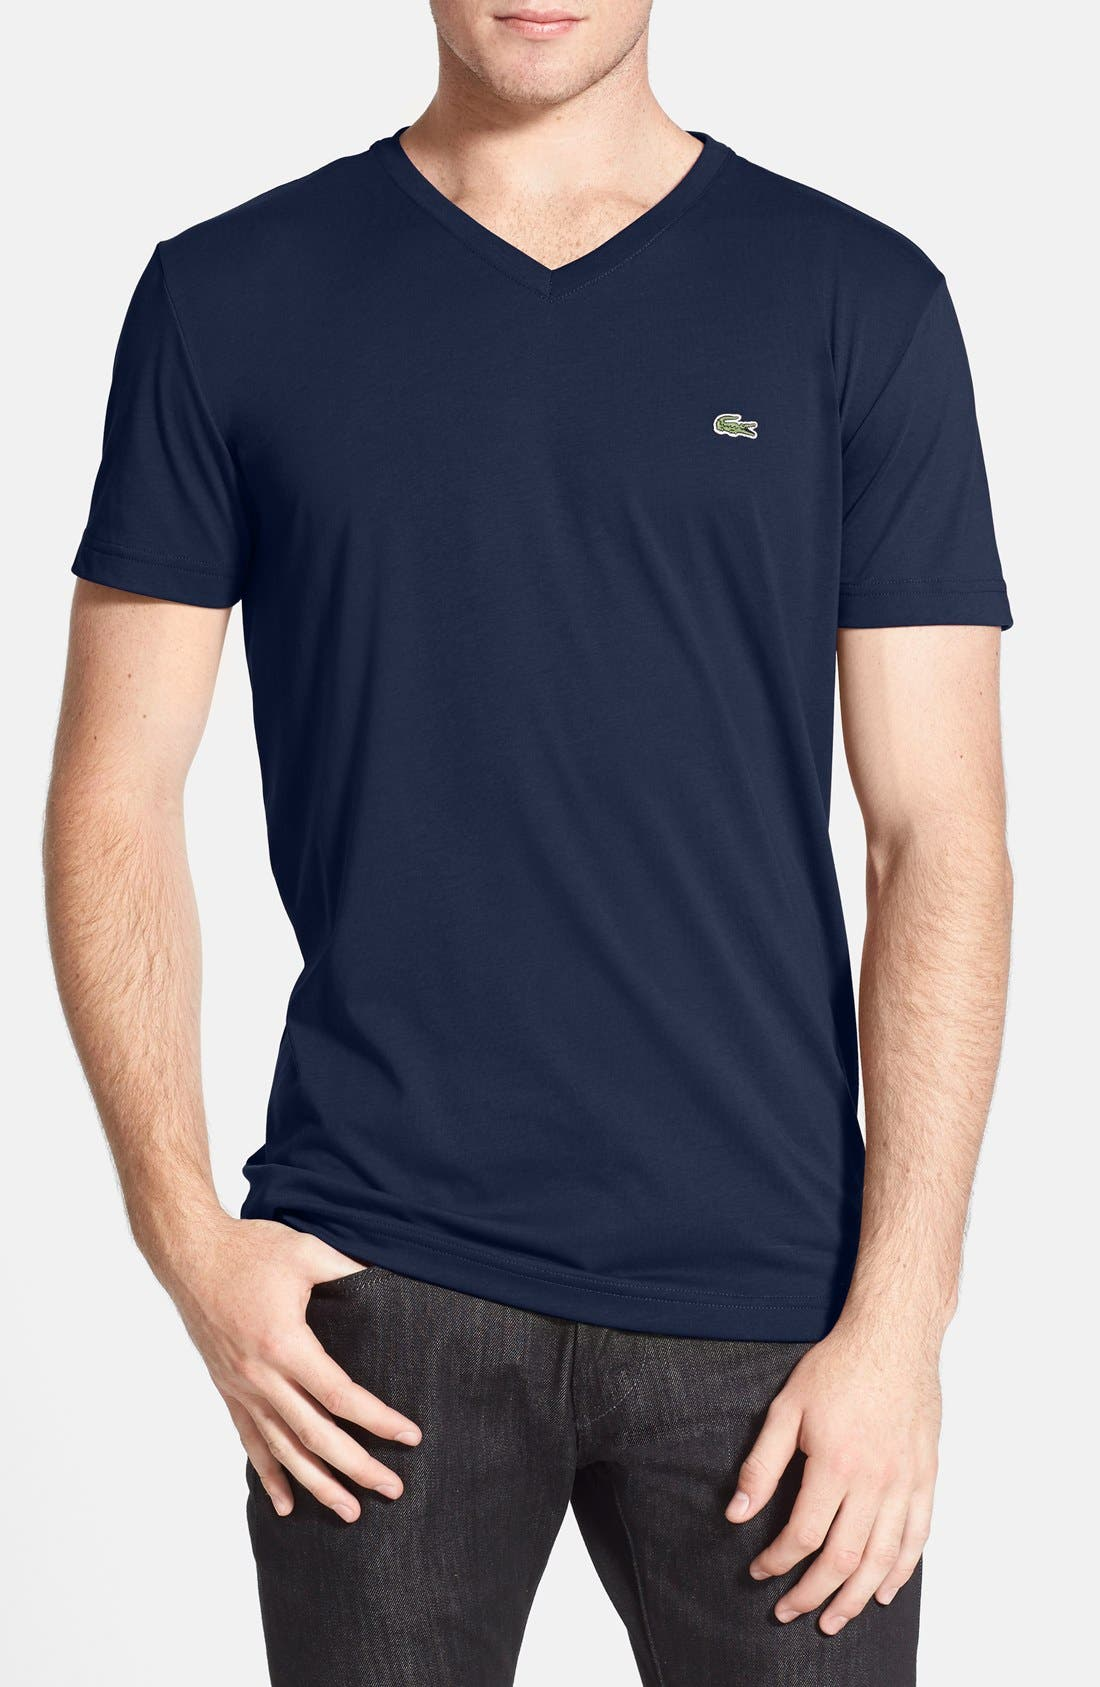 Main Image - Lacoste Pima Cotton Jersey V-Neck T-Shirt